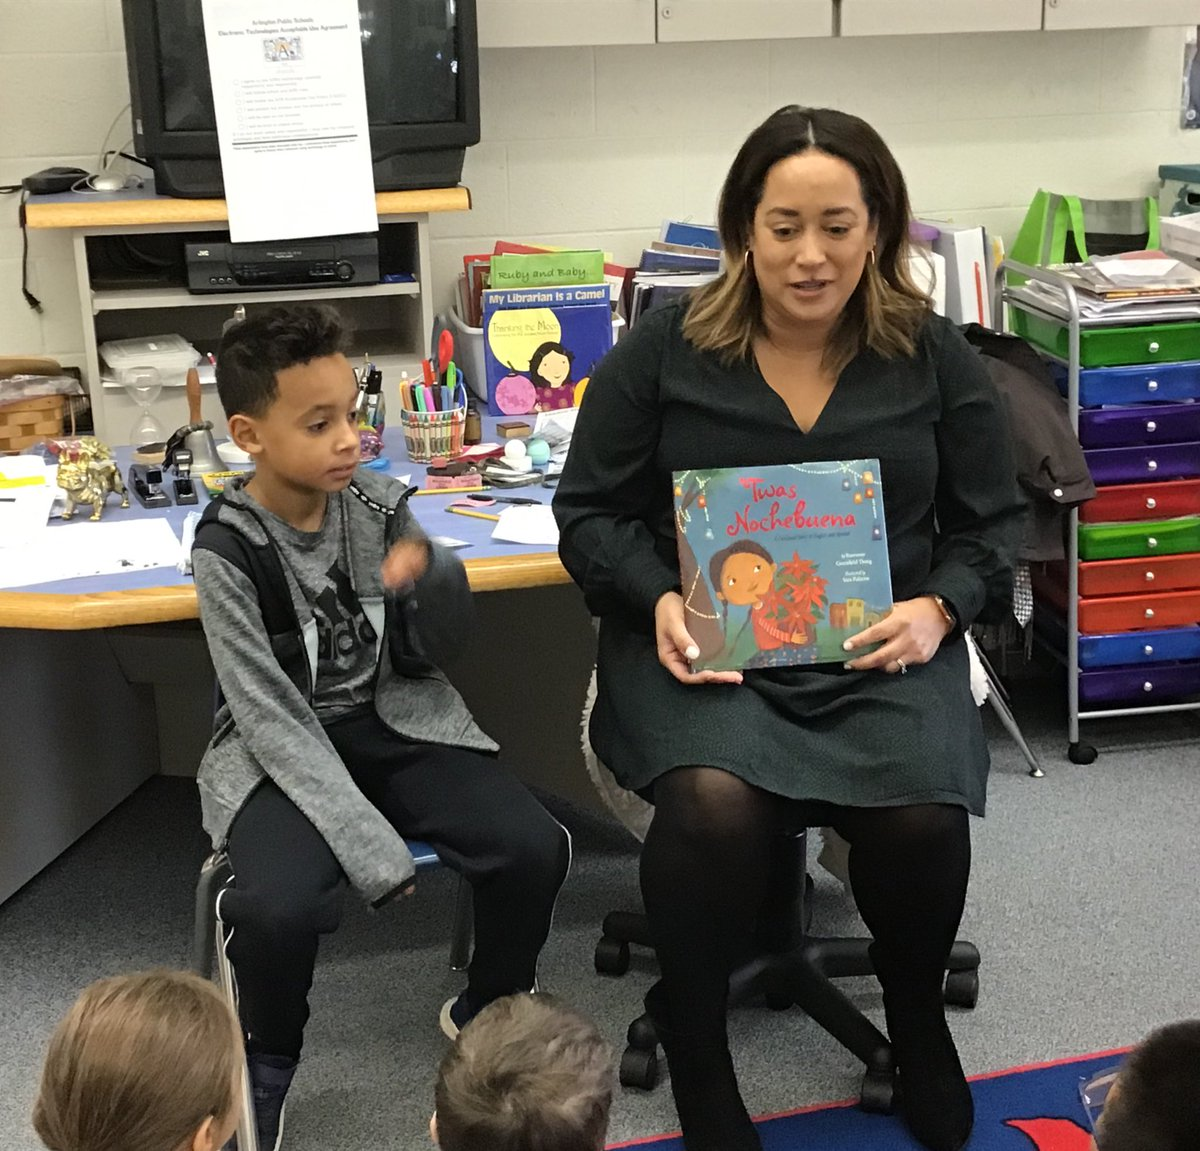 "Mom and I read ""Noche Buena"" to my class <a target='_blank' href='http://twitter.com/GlebeAPS'>@GlebeAPS</a> <a target='_blank' href='http://twitter.com/APSVirginia'>@APSVirginia</a> <a target='_blank' href='http://twitter.com/glebepta'>@glebepta</a> <a target='_blank' href='http://search.twitter.com/search?q=GlebeEagles'><a target='_blank' href='https://twitter.com/hashtag/GlebeEagles?src=hash'>#GlebeEagles</a></a> <a target='_blank' href='https://t.co/i0eIIJci1J'>https://t.co/i0eIIJci1J</a>"